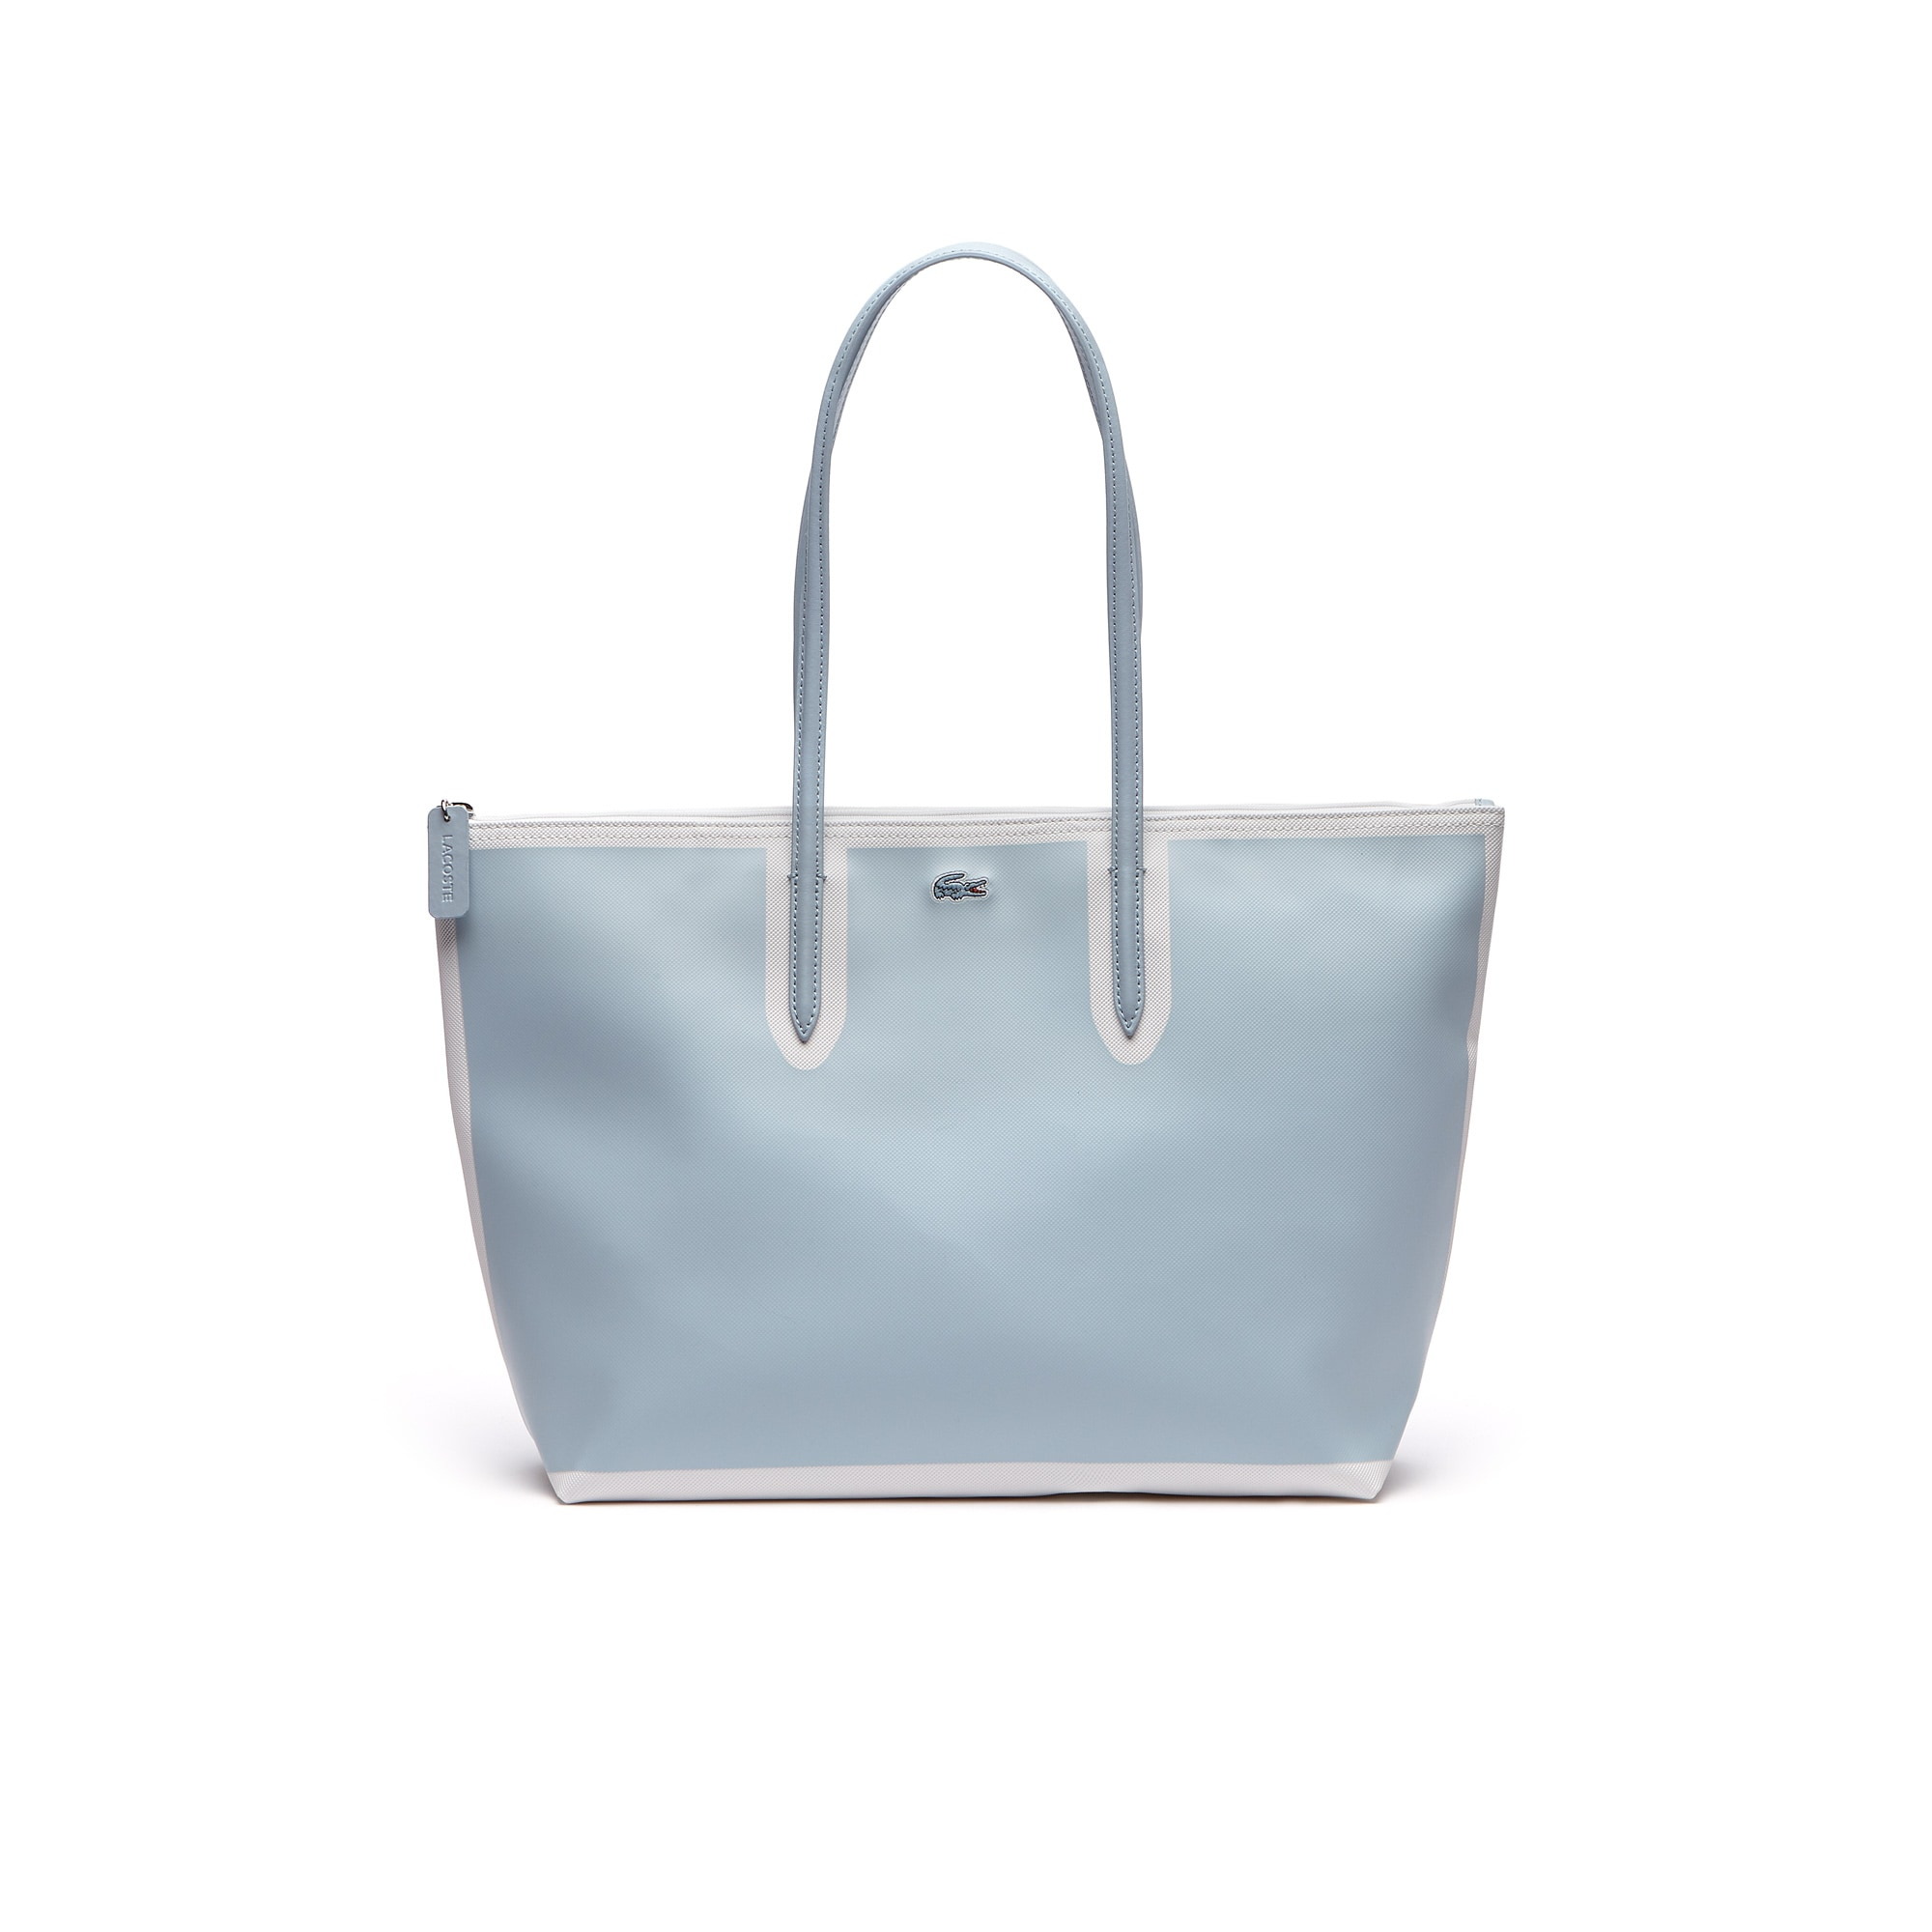 Shopping bag grande con zip L.12.12 Concept in petit piqué color block